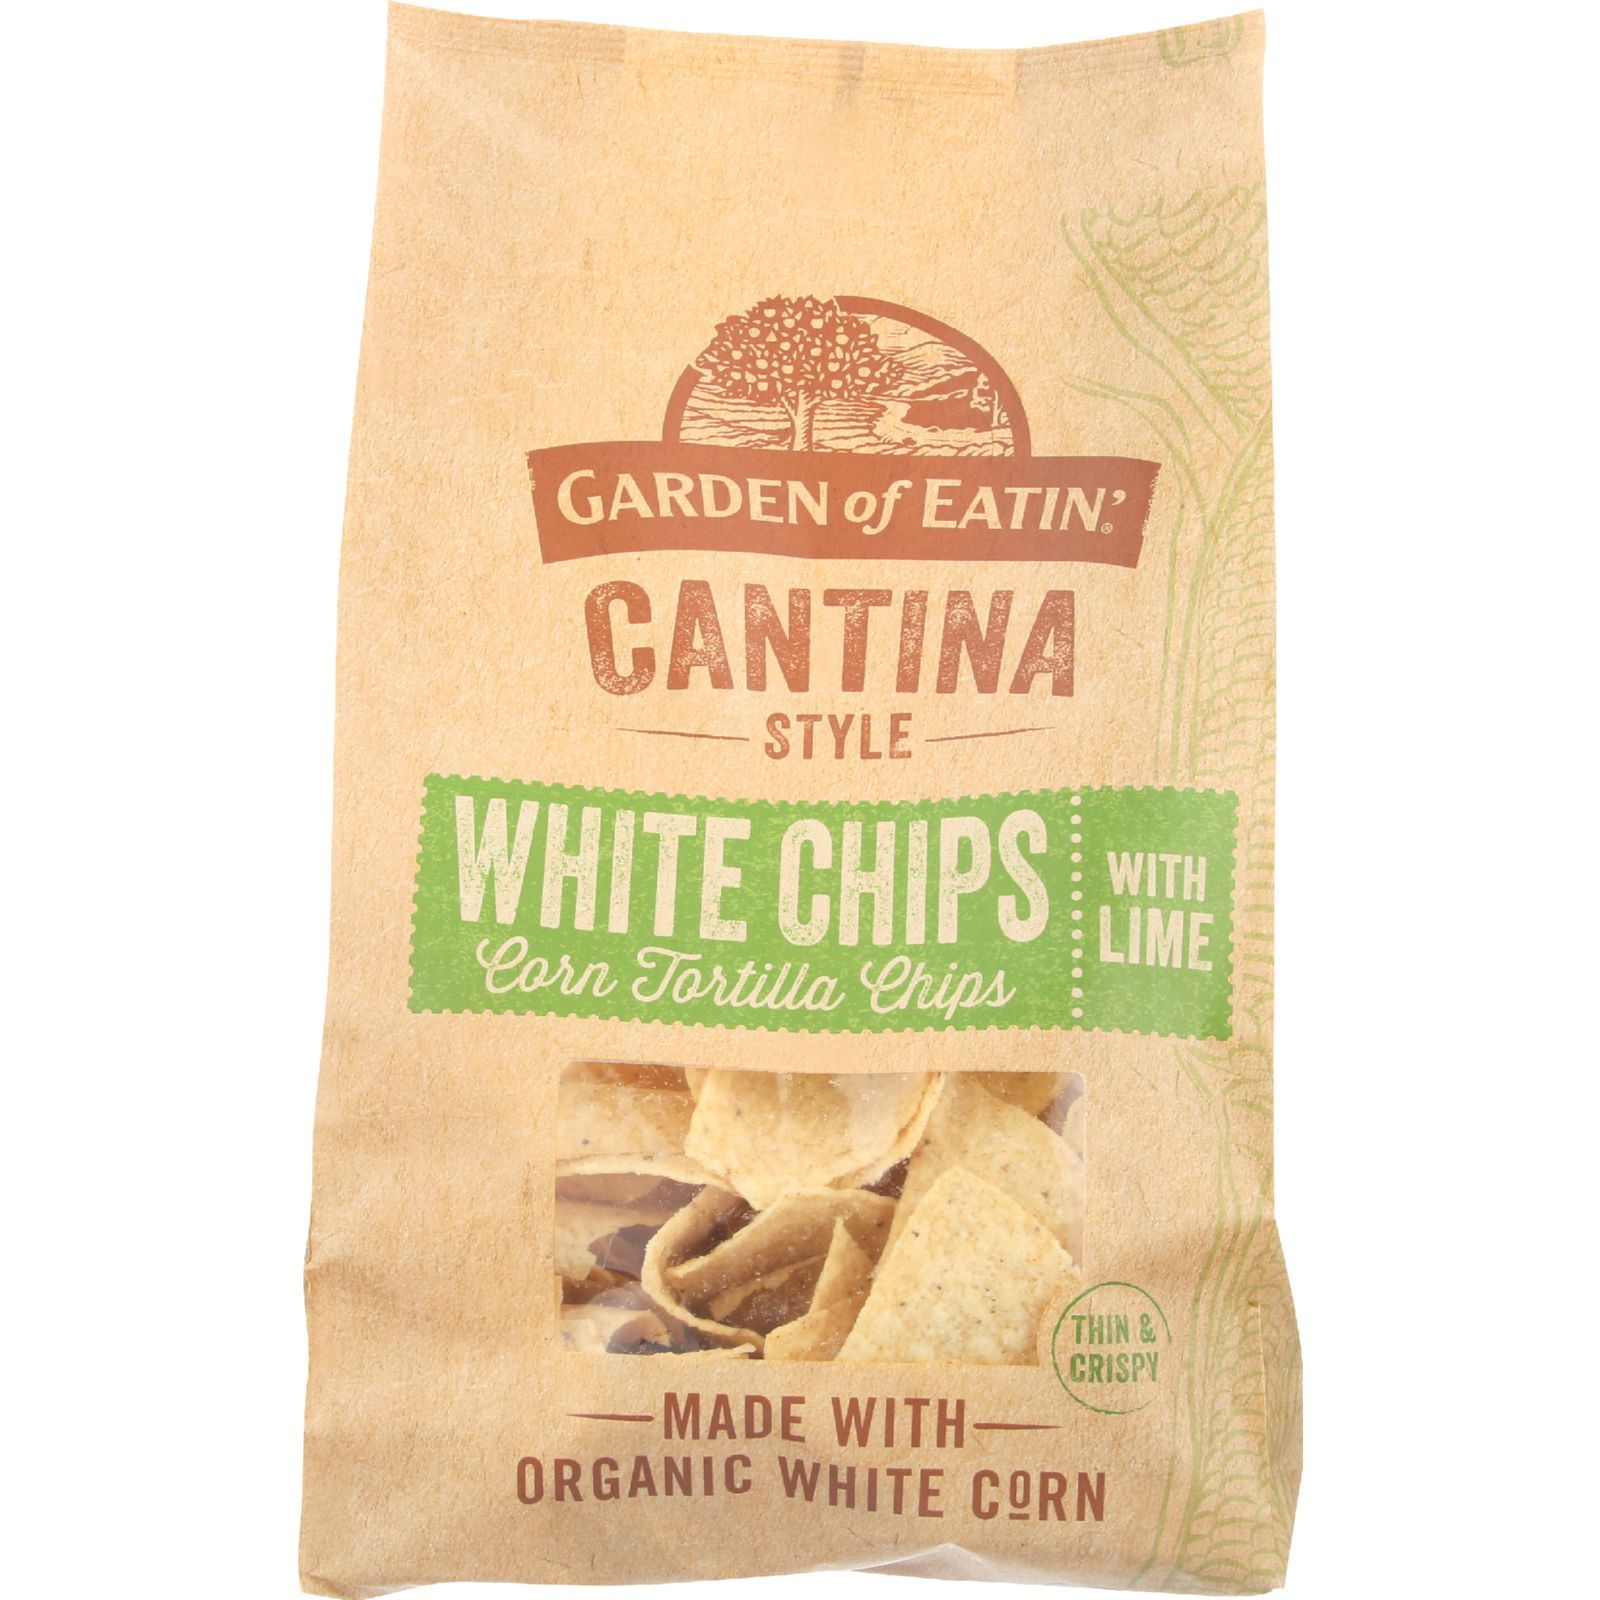 Garden Of Eatin Tortilla Chips - Organic - Cantina Style - White Corn - with Lime - 13 oz - case of 10